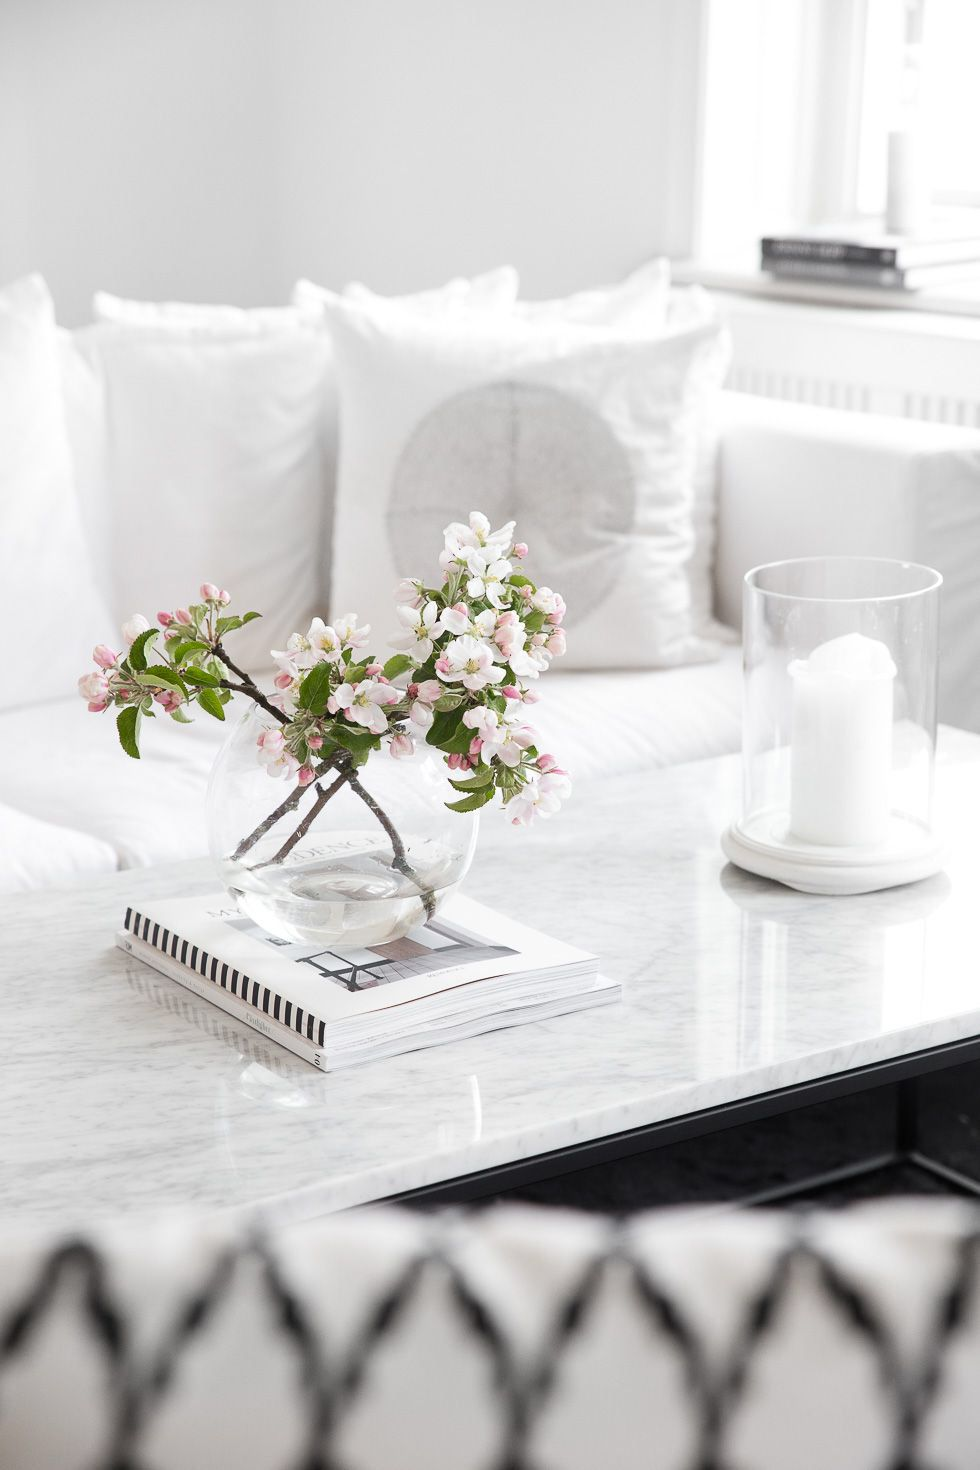 Apple Blossom adds a magical feeling in this all white room